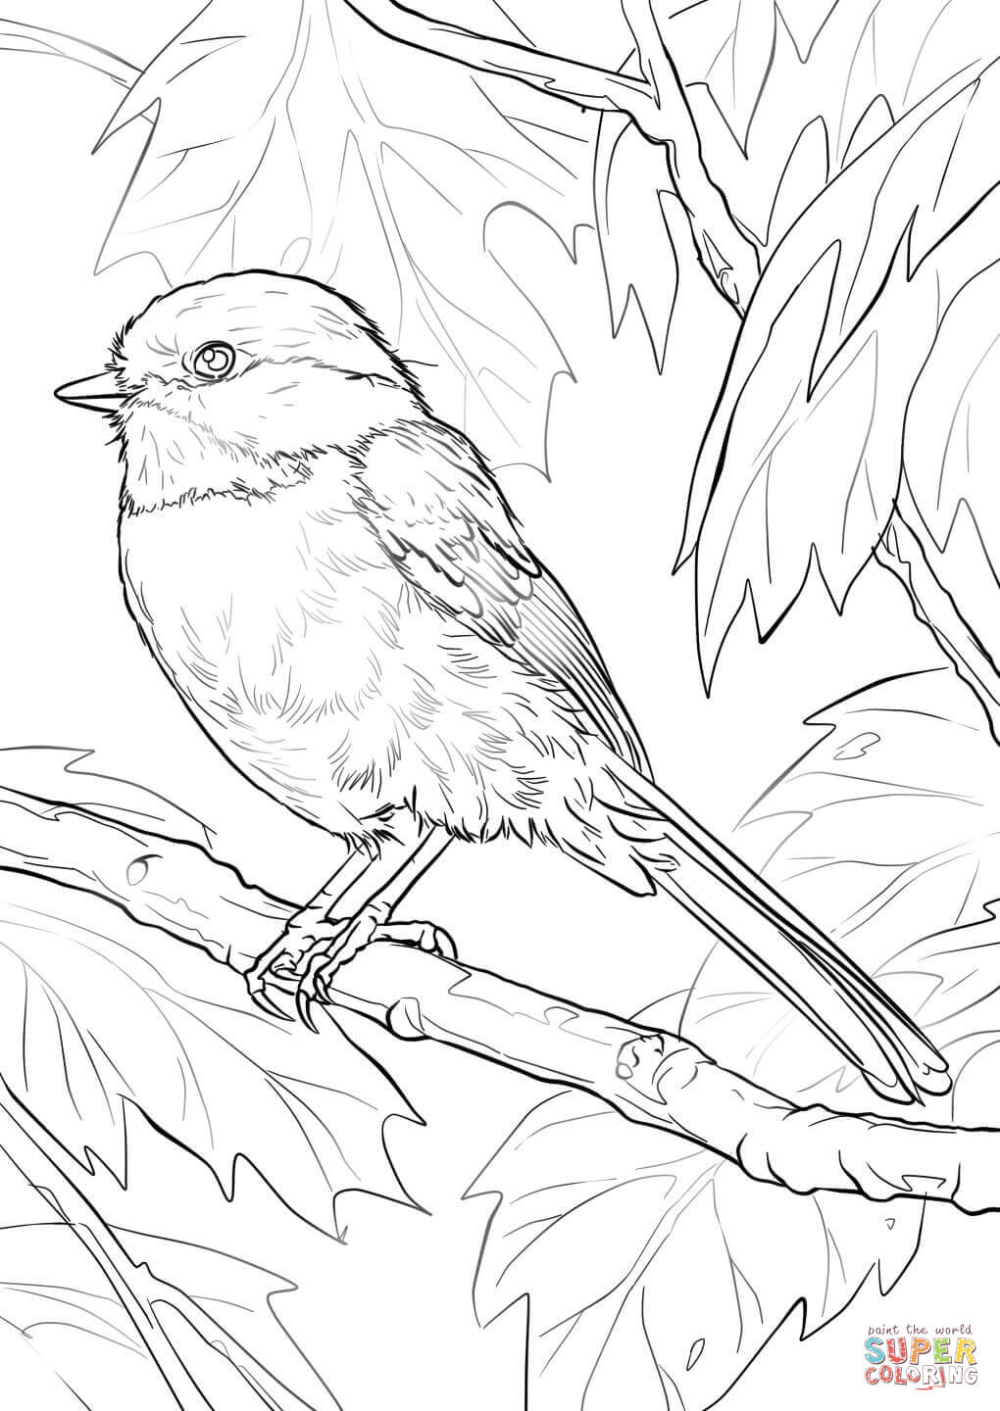 Black Capped Chickadee Coloring Page Free Printable Coloring Pages Bird Coloring Pages Coloring Pages Nature Free Printable Coloring Sheets